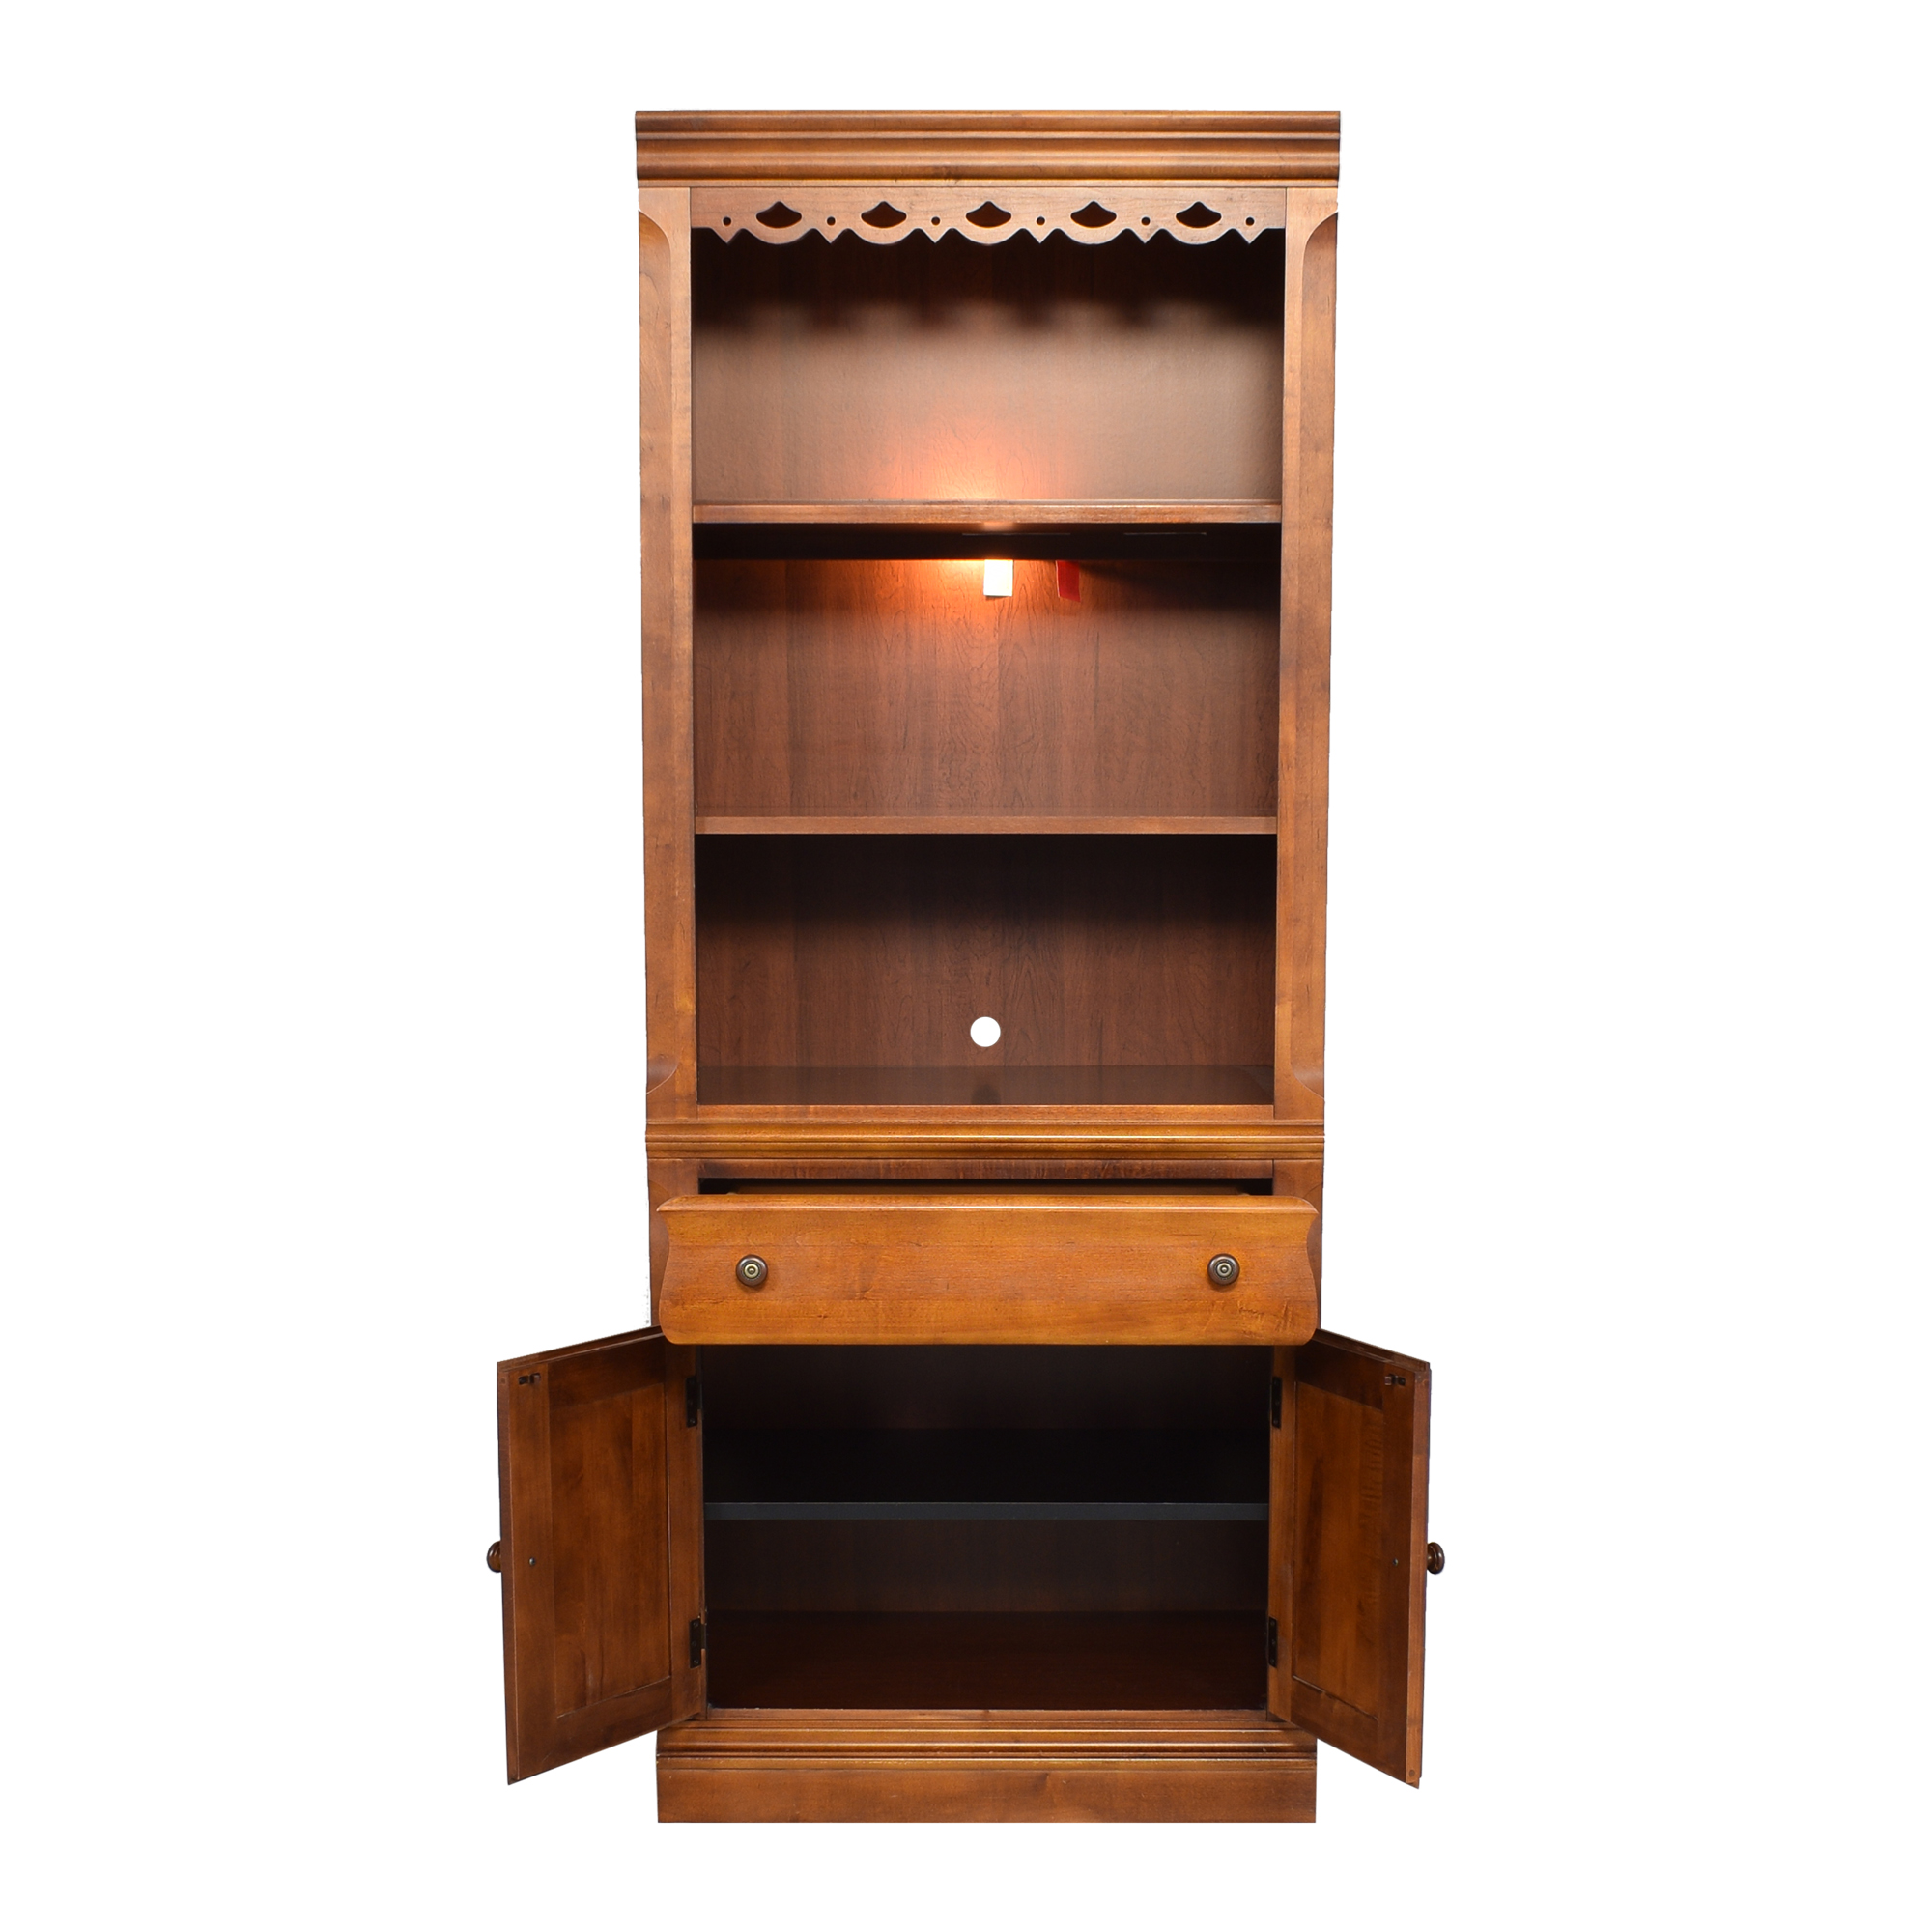 Broyhill Furniture Broyhill Furniture Lighted Bookcase ma